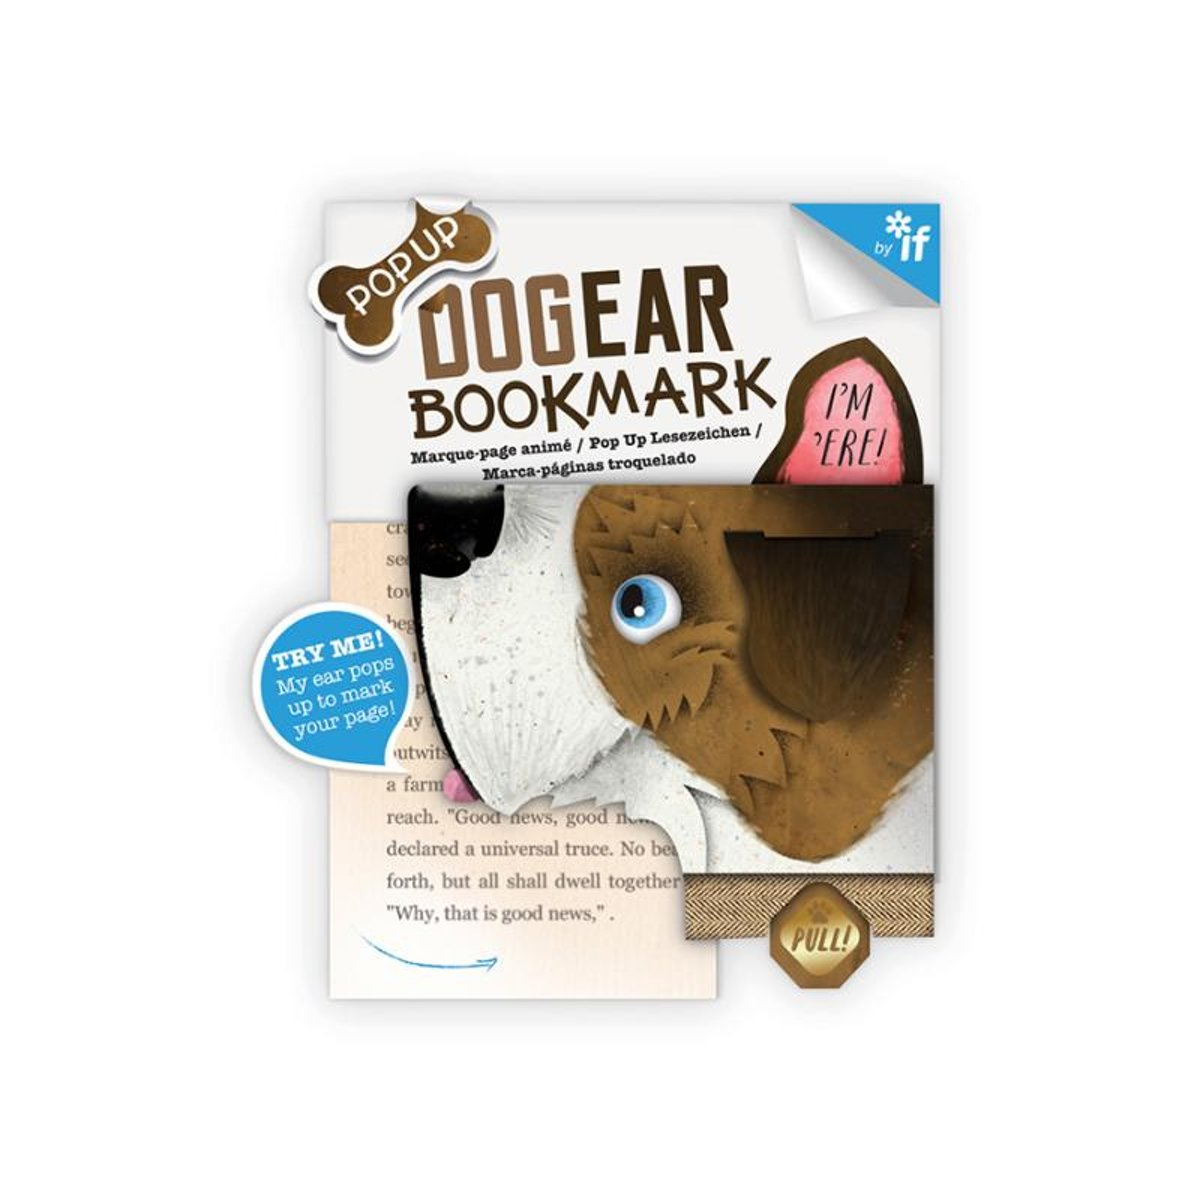 Dog Ear Bookmarks - Nipper (Terrier)